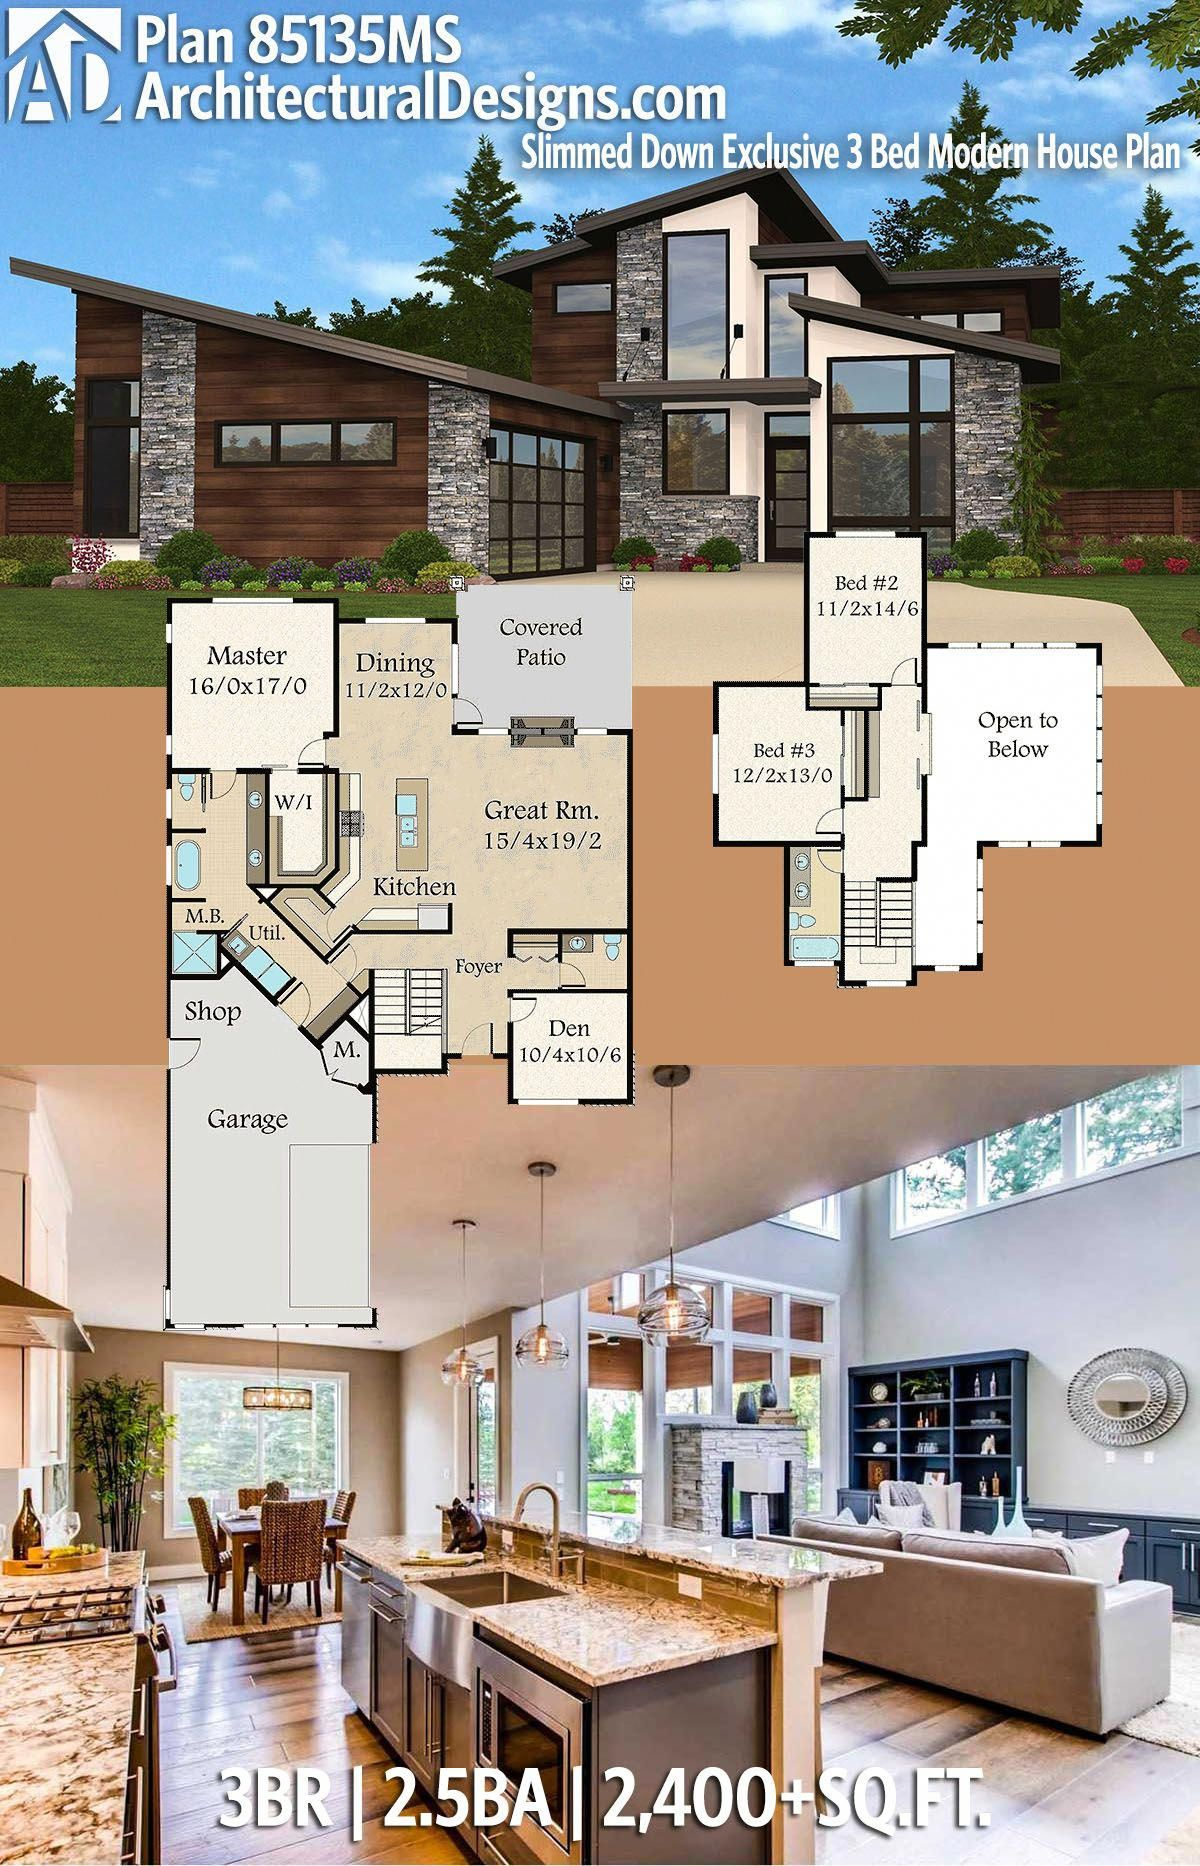 Desertrose Architectural Designs Exclusive House Plan 85135ms Has 3 Beds 2 5 Baths 2 400 Square F Modern Style House Plans House Plans Modern House Plan